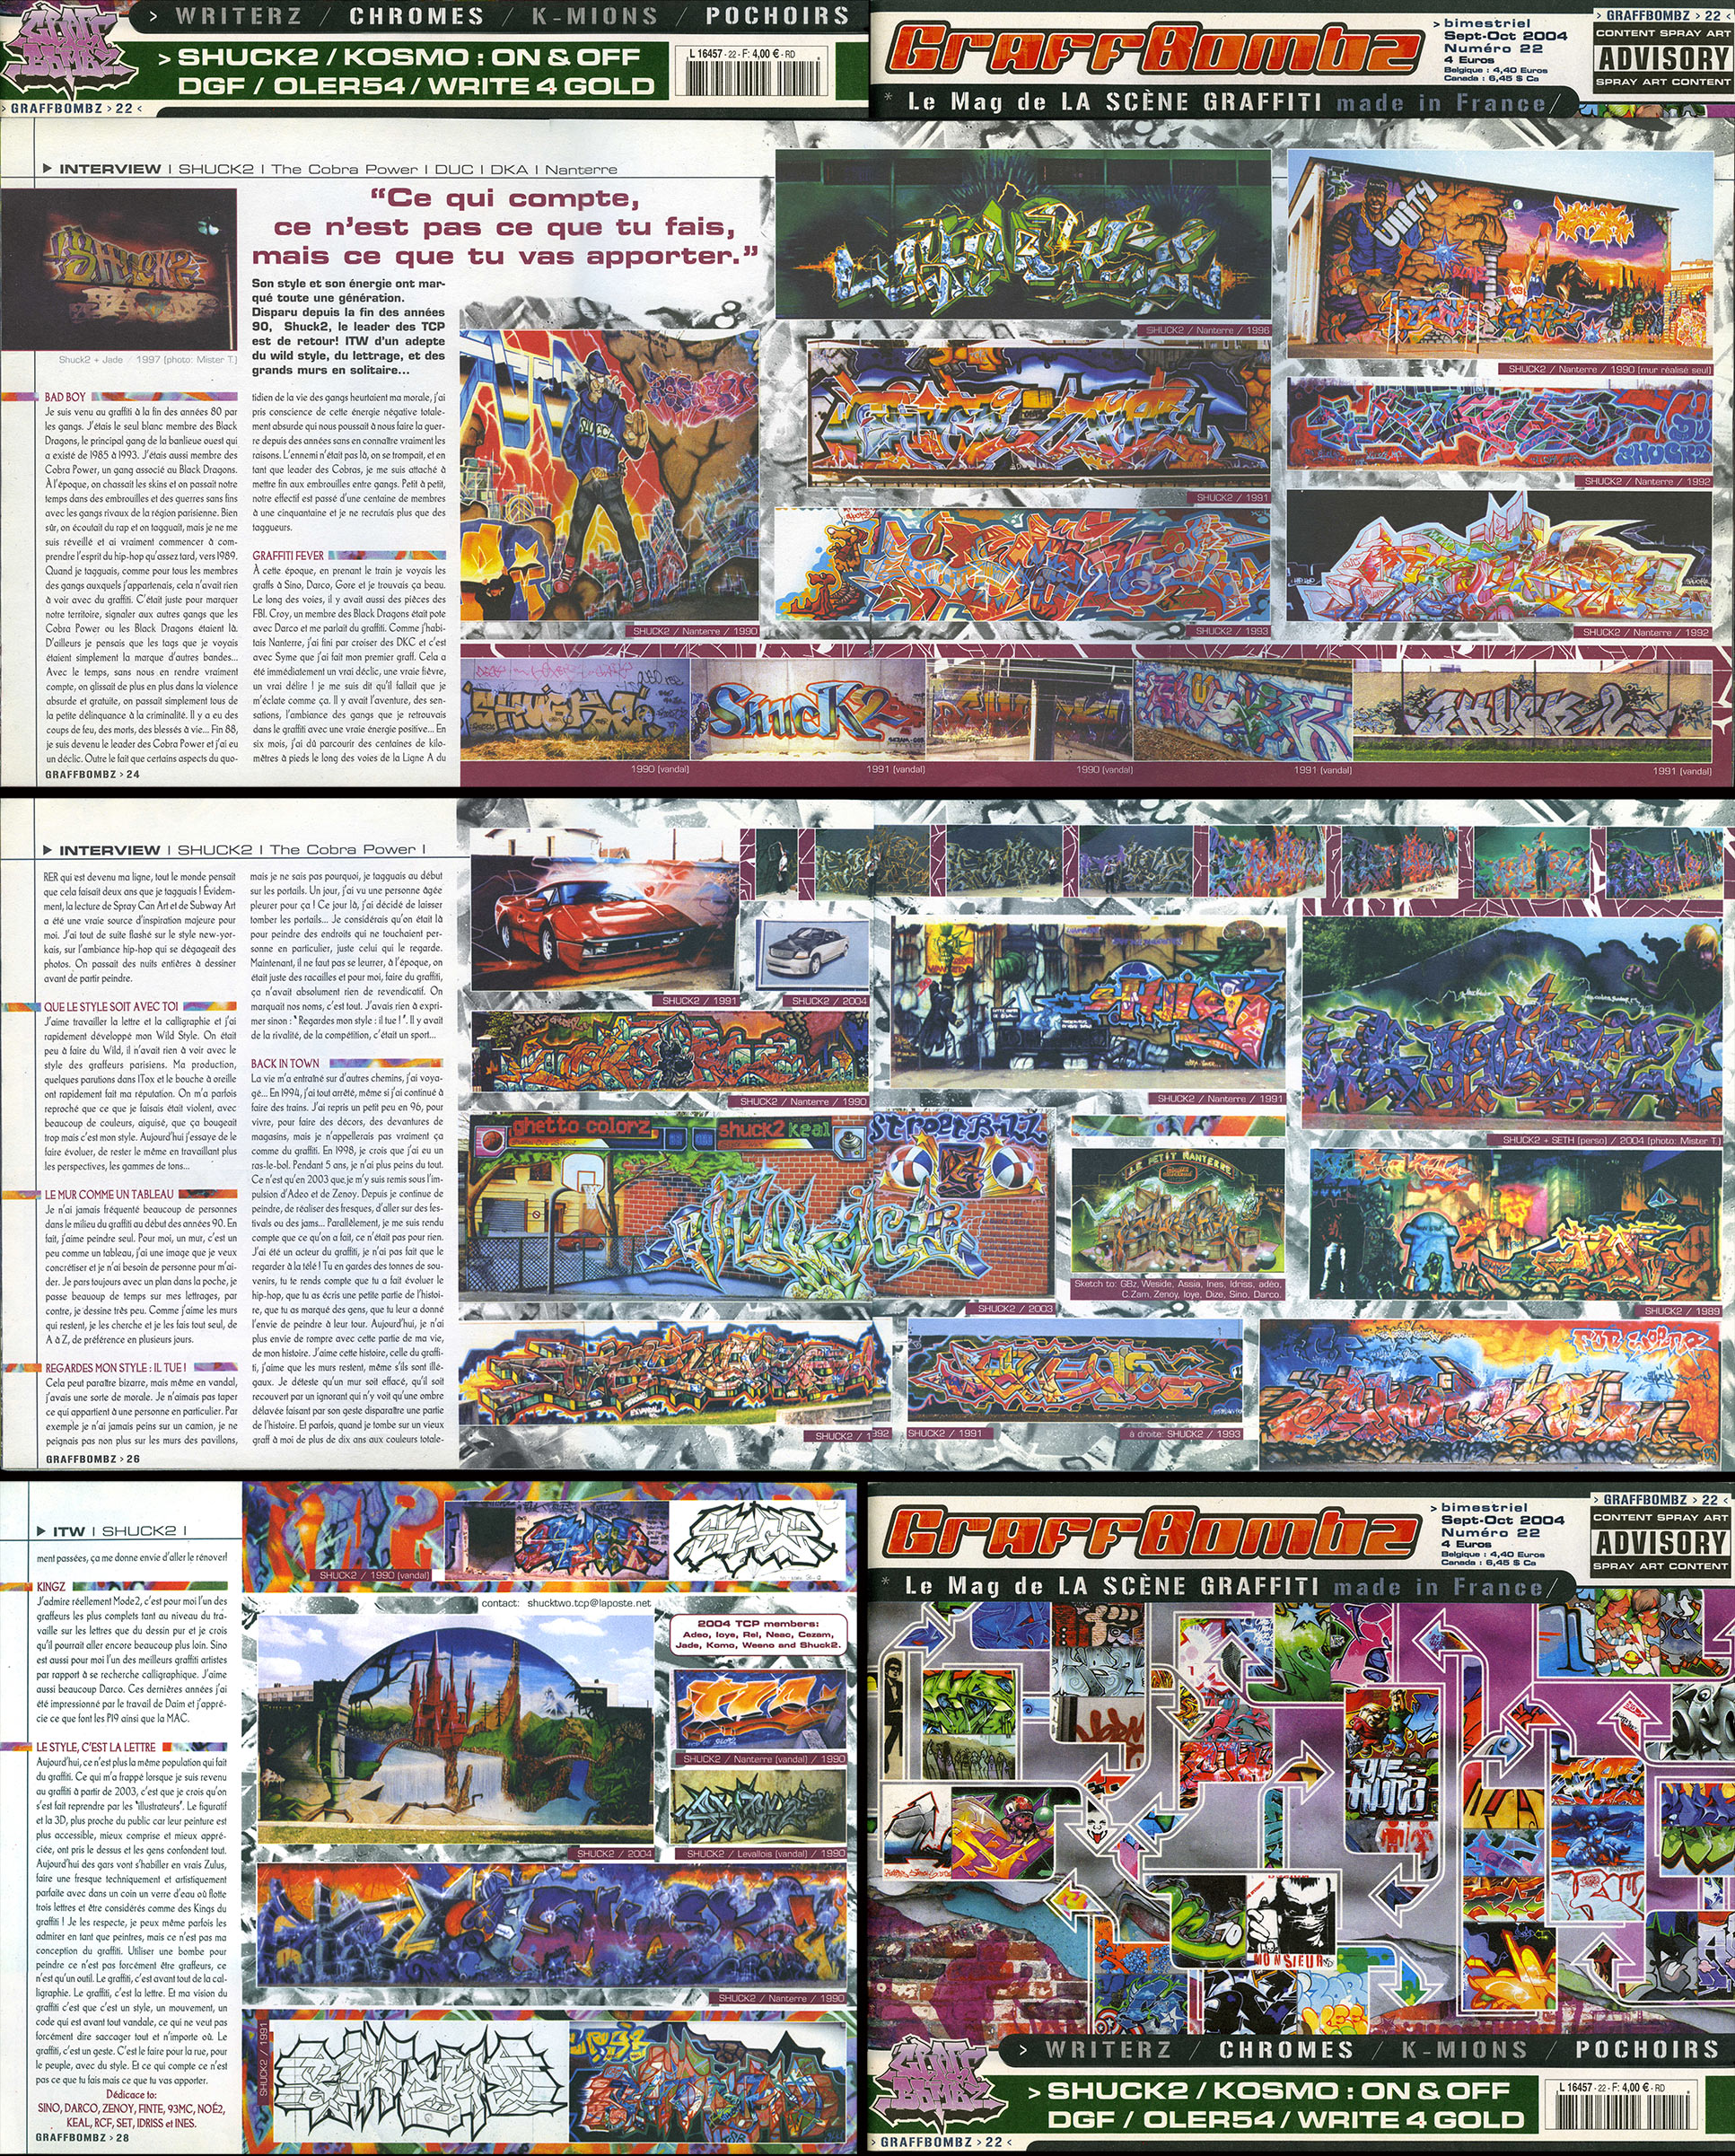 WEB-2004-INTERVIEW-GRAFFBOMBZ-N22